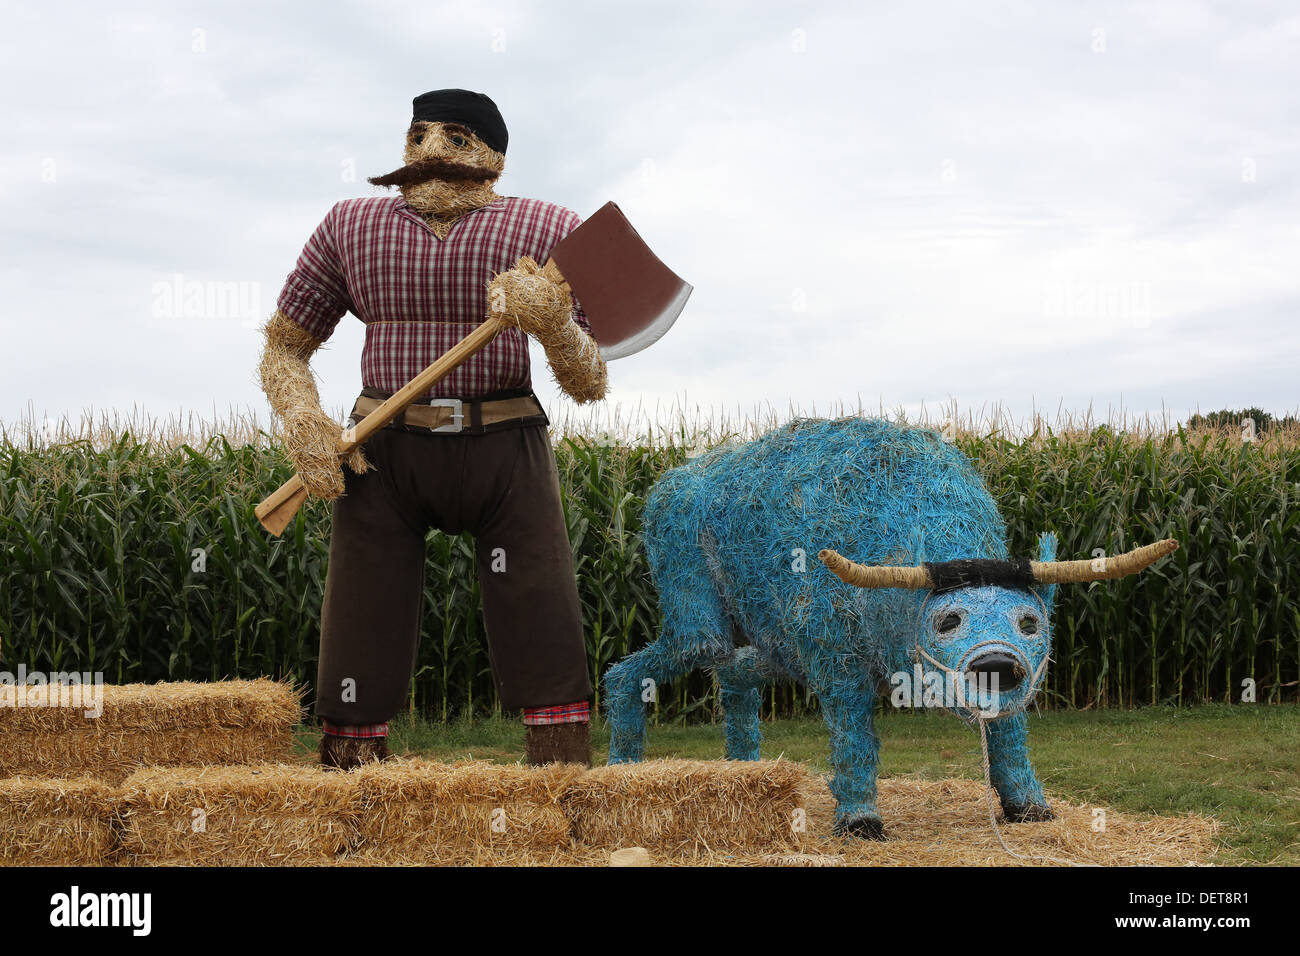 Statues of Paul Bunyan and Babe the Blue Ox made out of hay at Sever's Corn Maze in Shakopee, Minnesota. Stock Photo